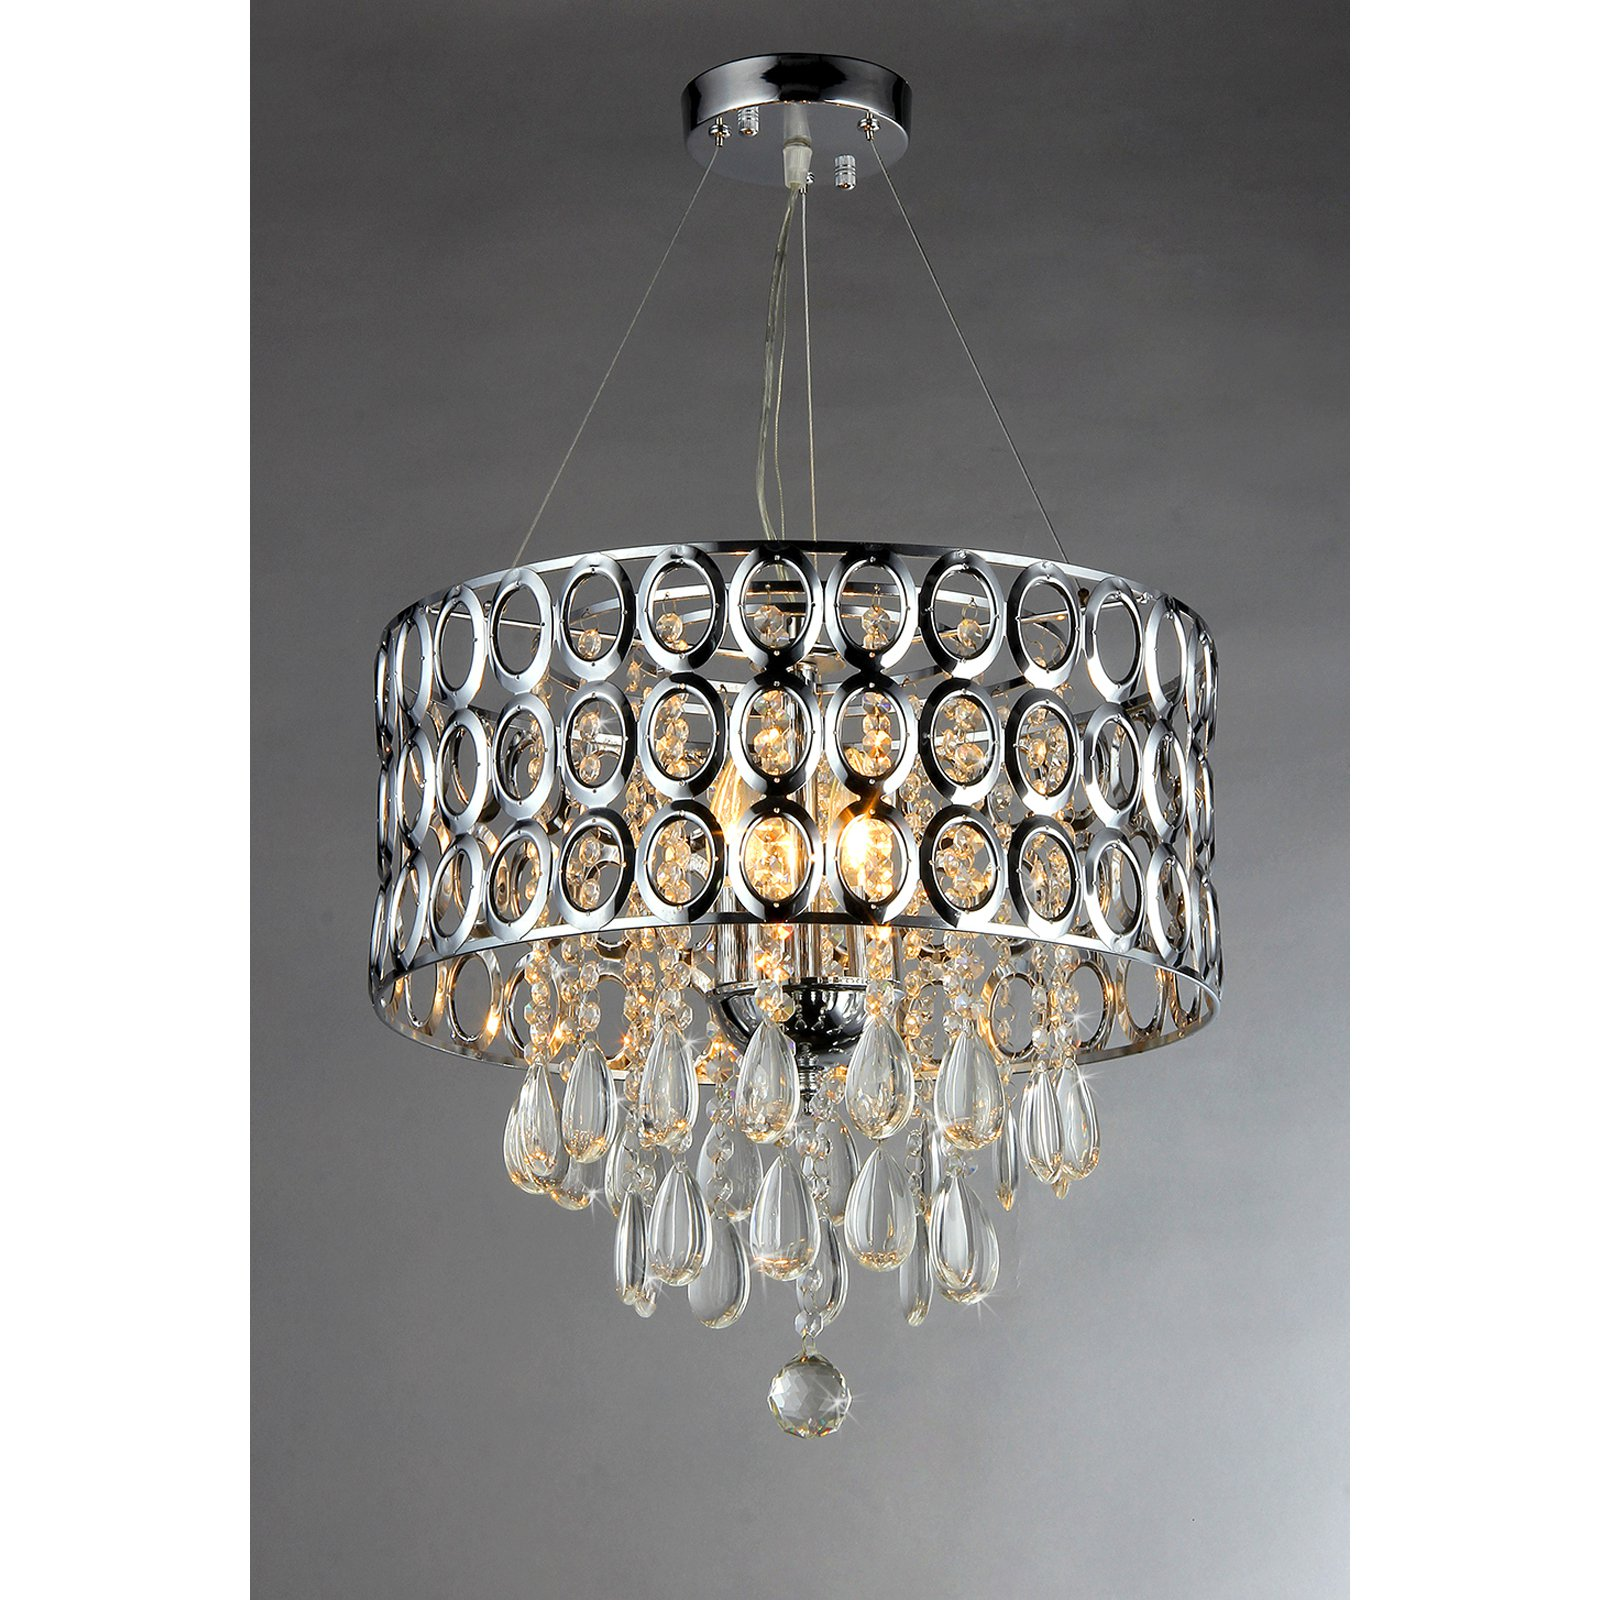 Warehouse of Tiffany Antoinette RL1189 Crystal Chandelier by Supplier Generic